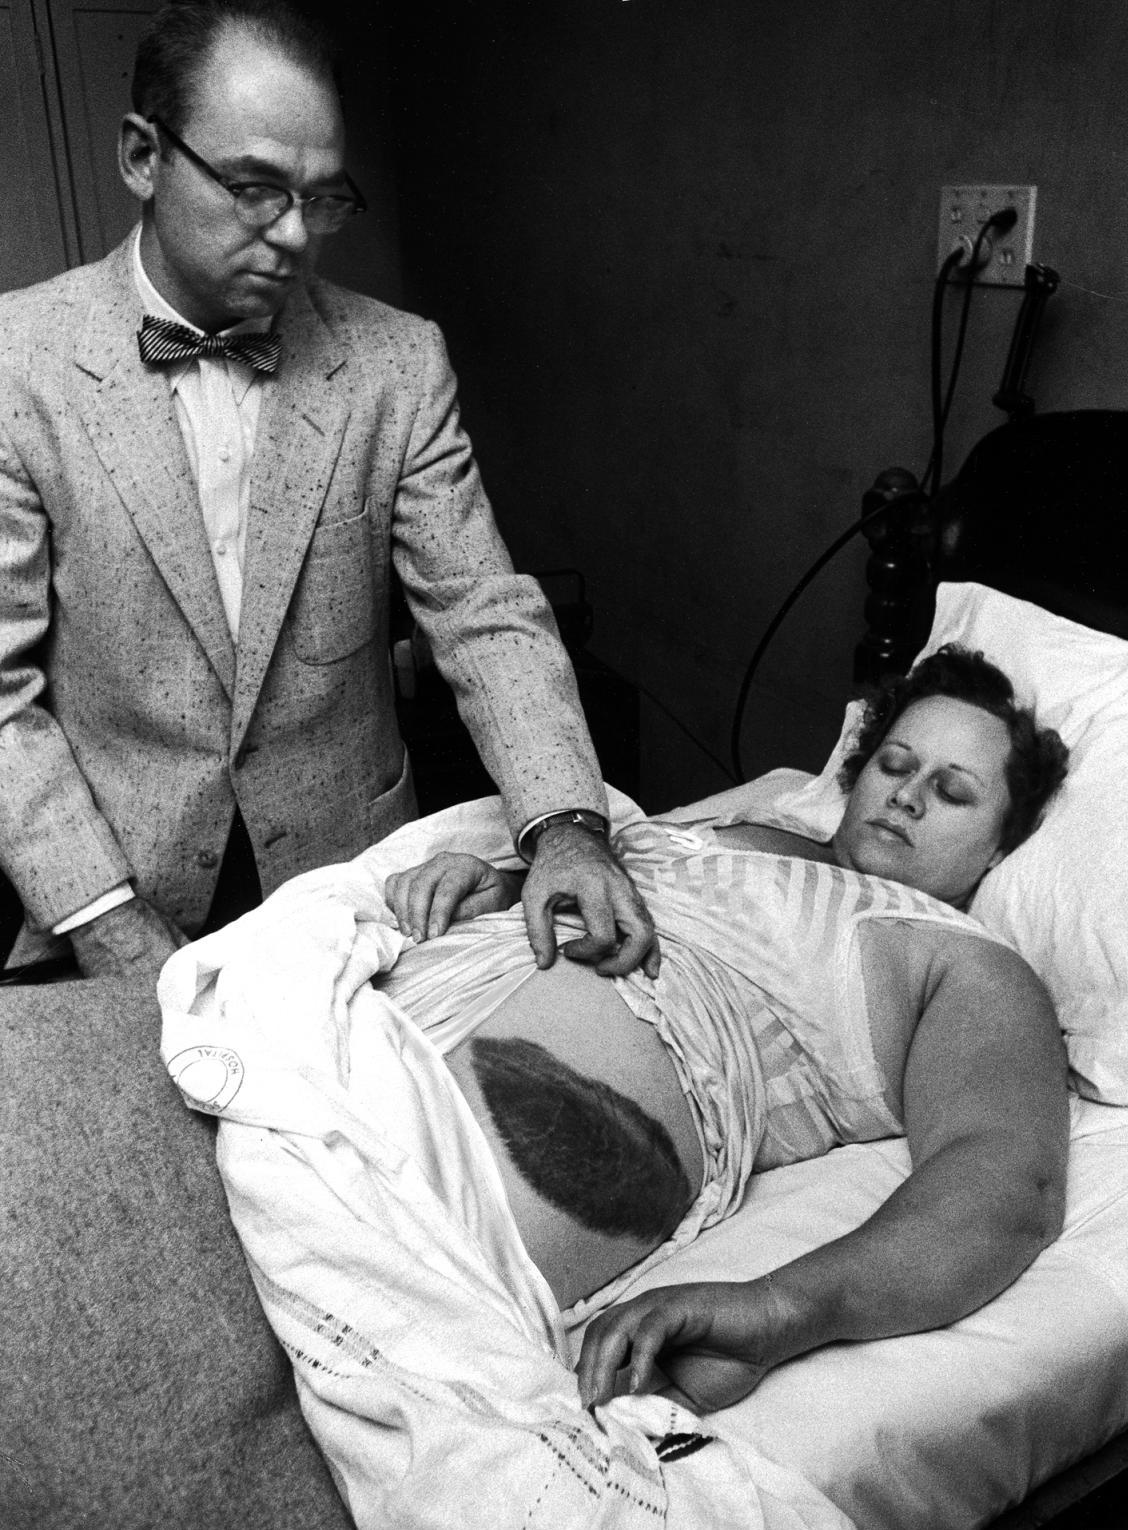 Ann Hodges struck with meteorite in 1954 in Alabama